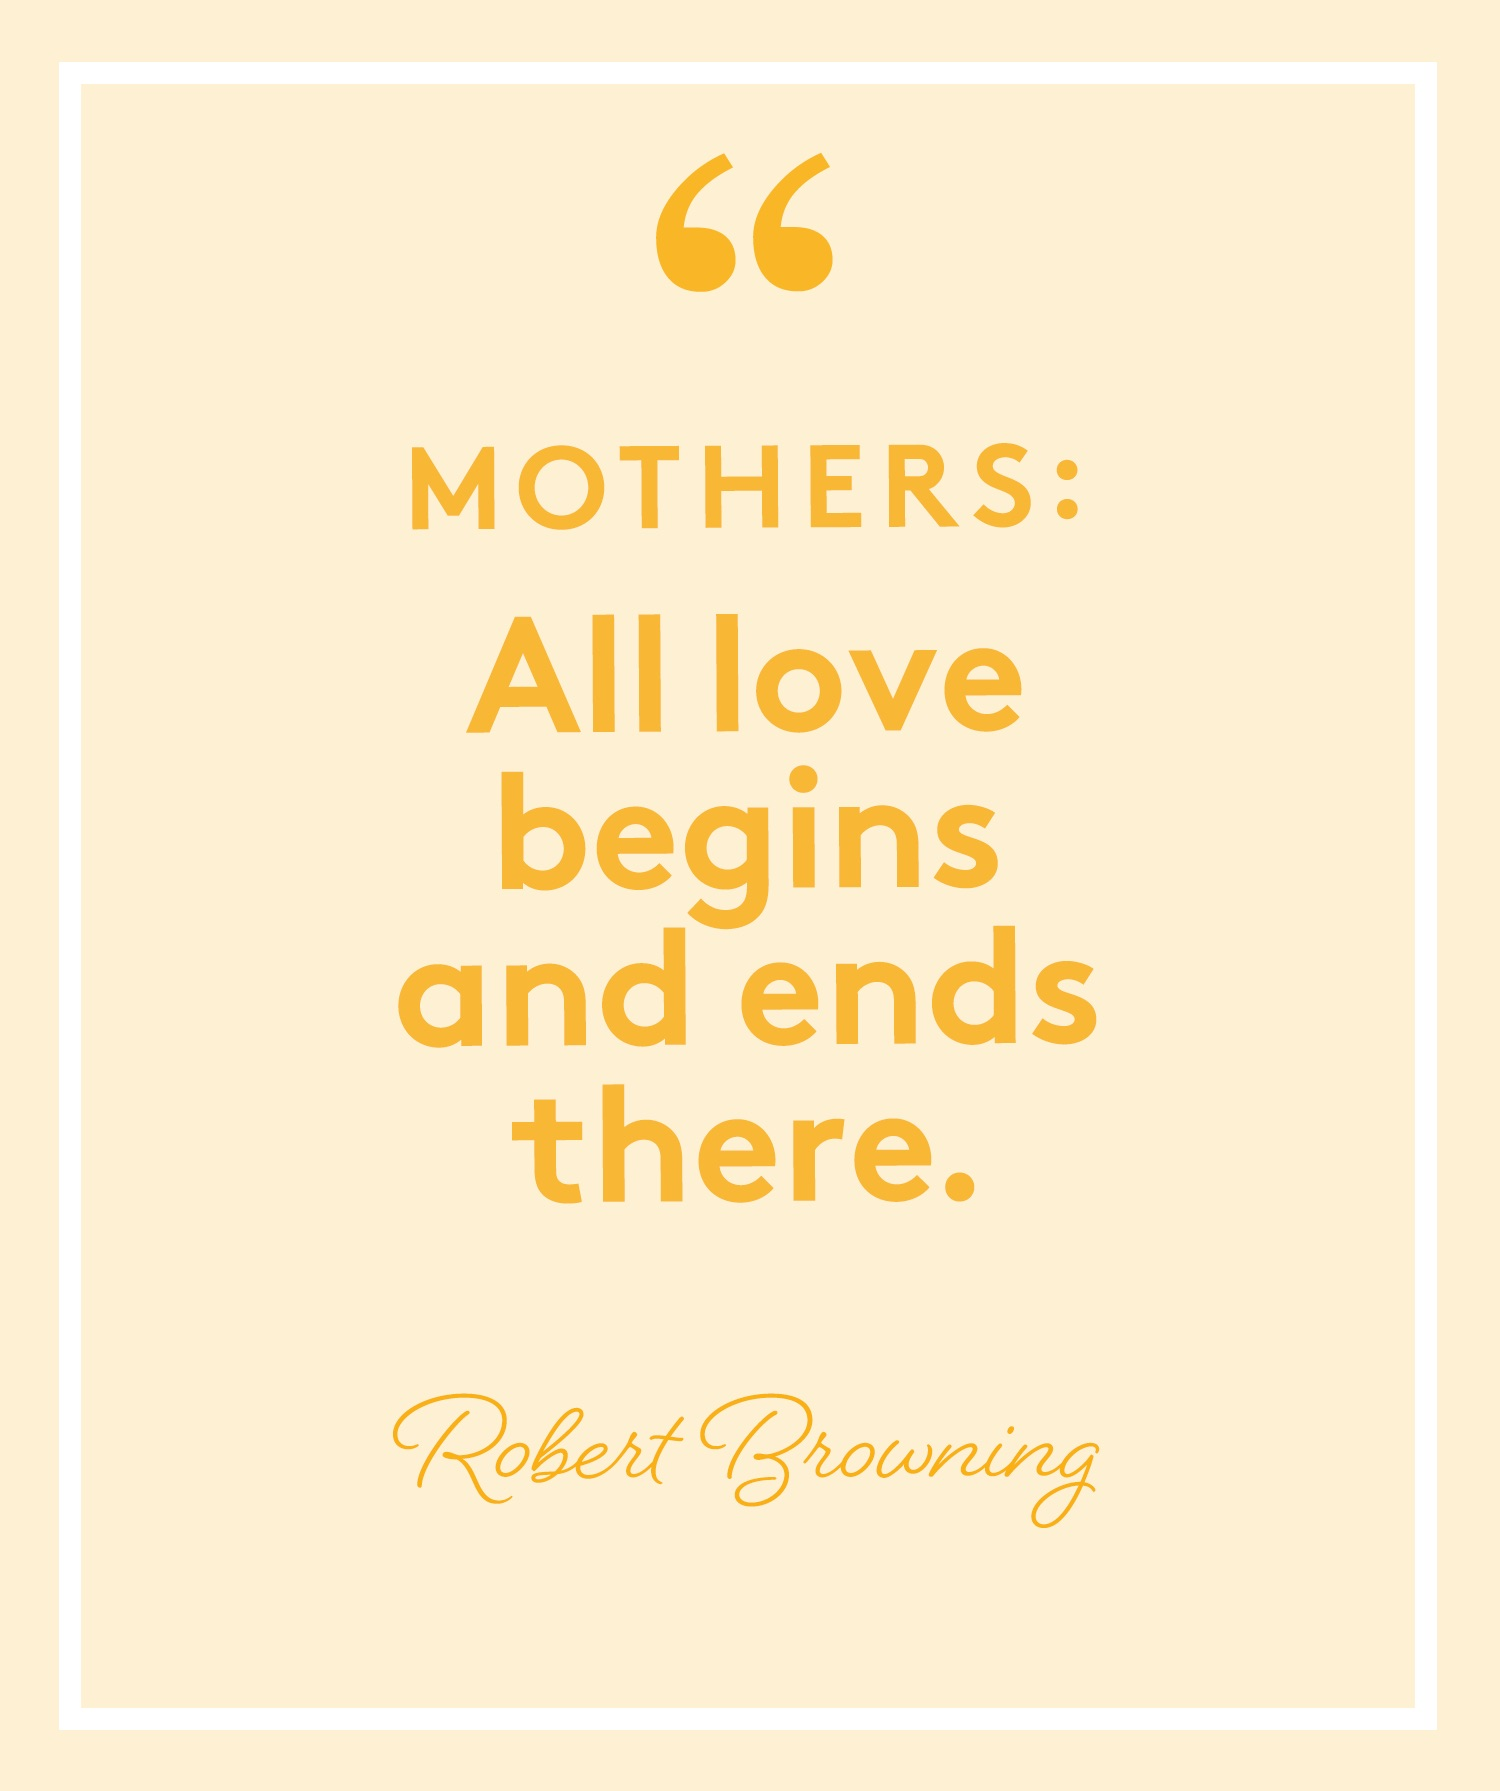 Simple Poems for Mother's Day: Poem by Robert Browning